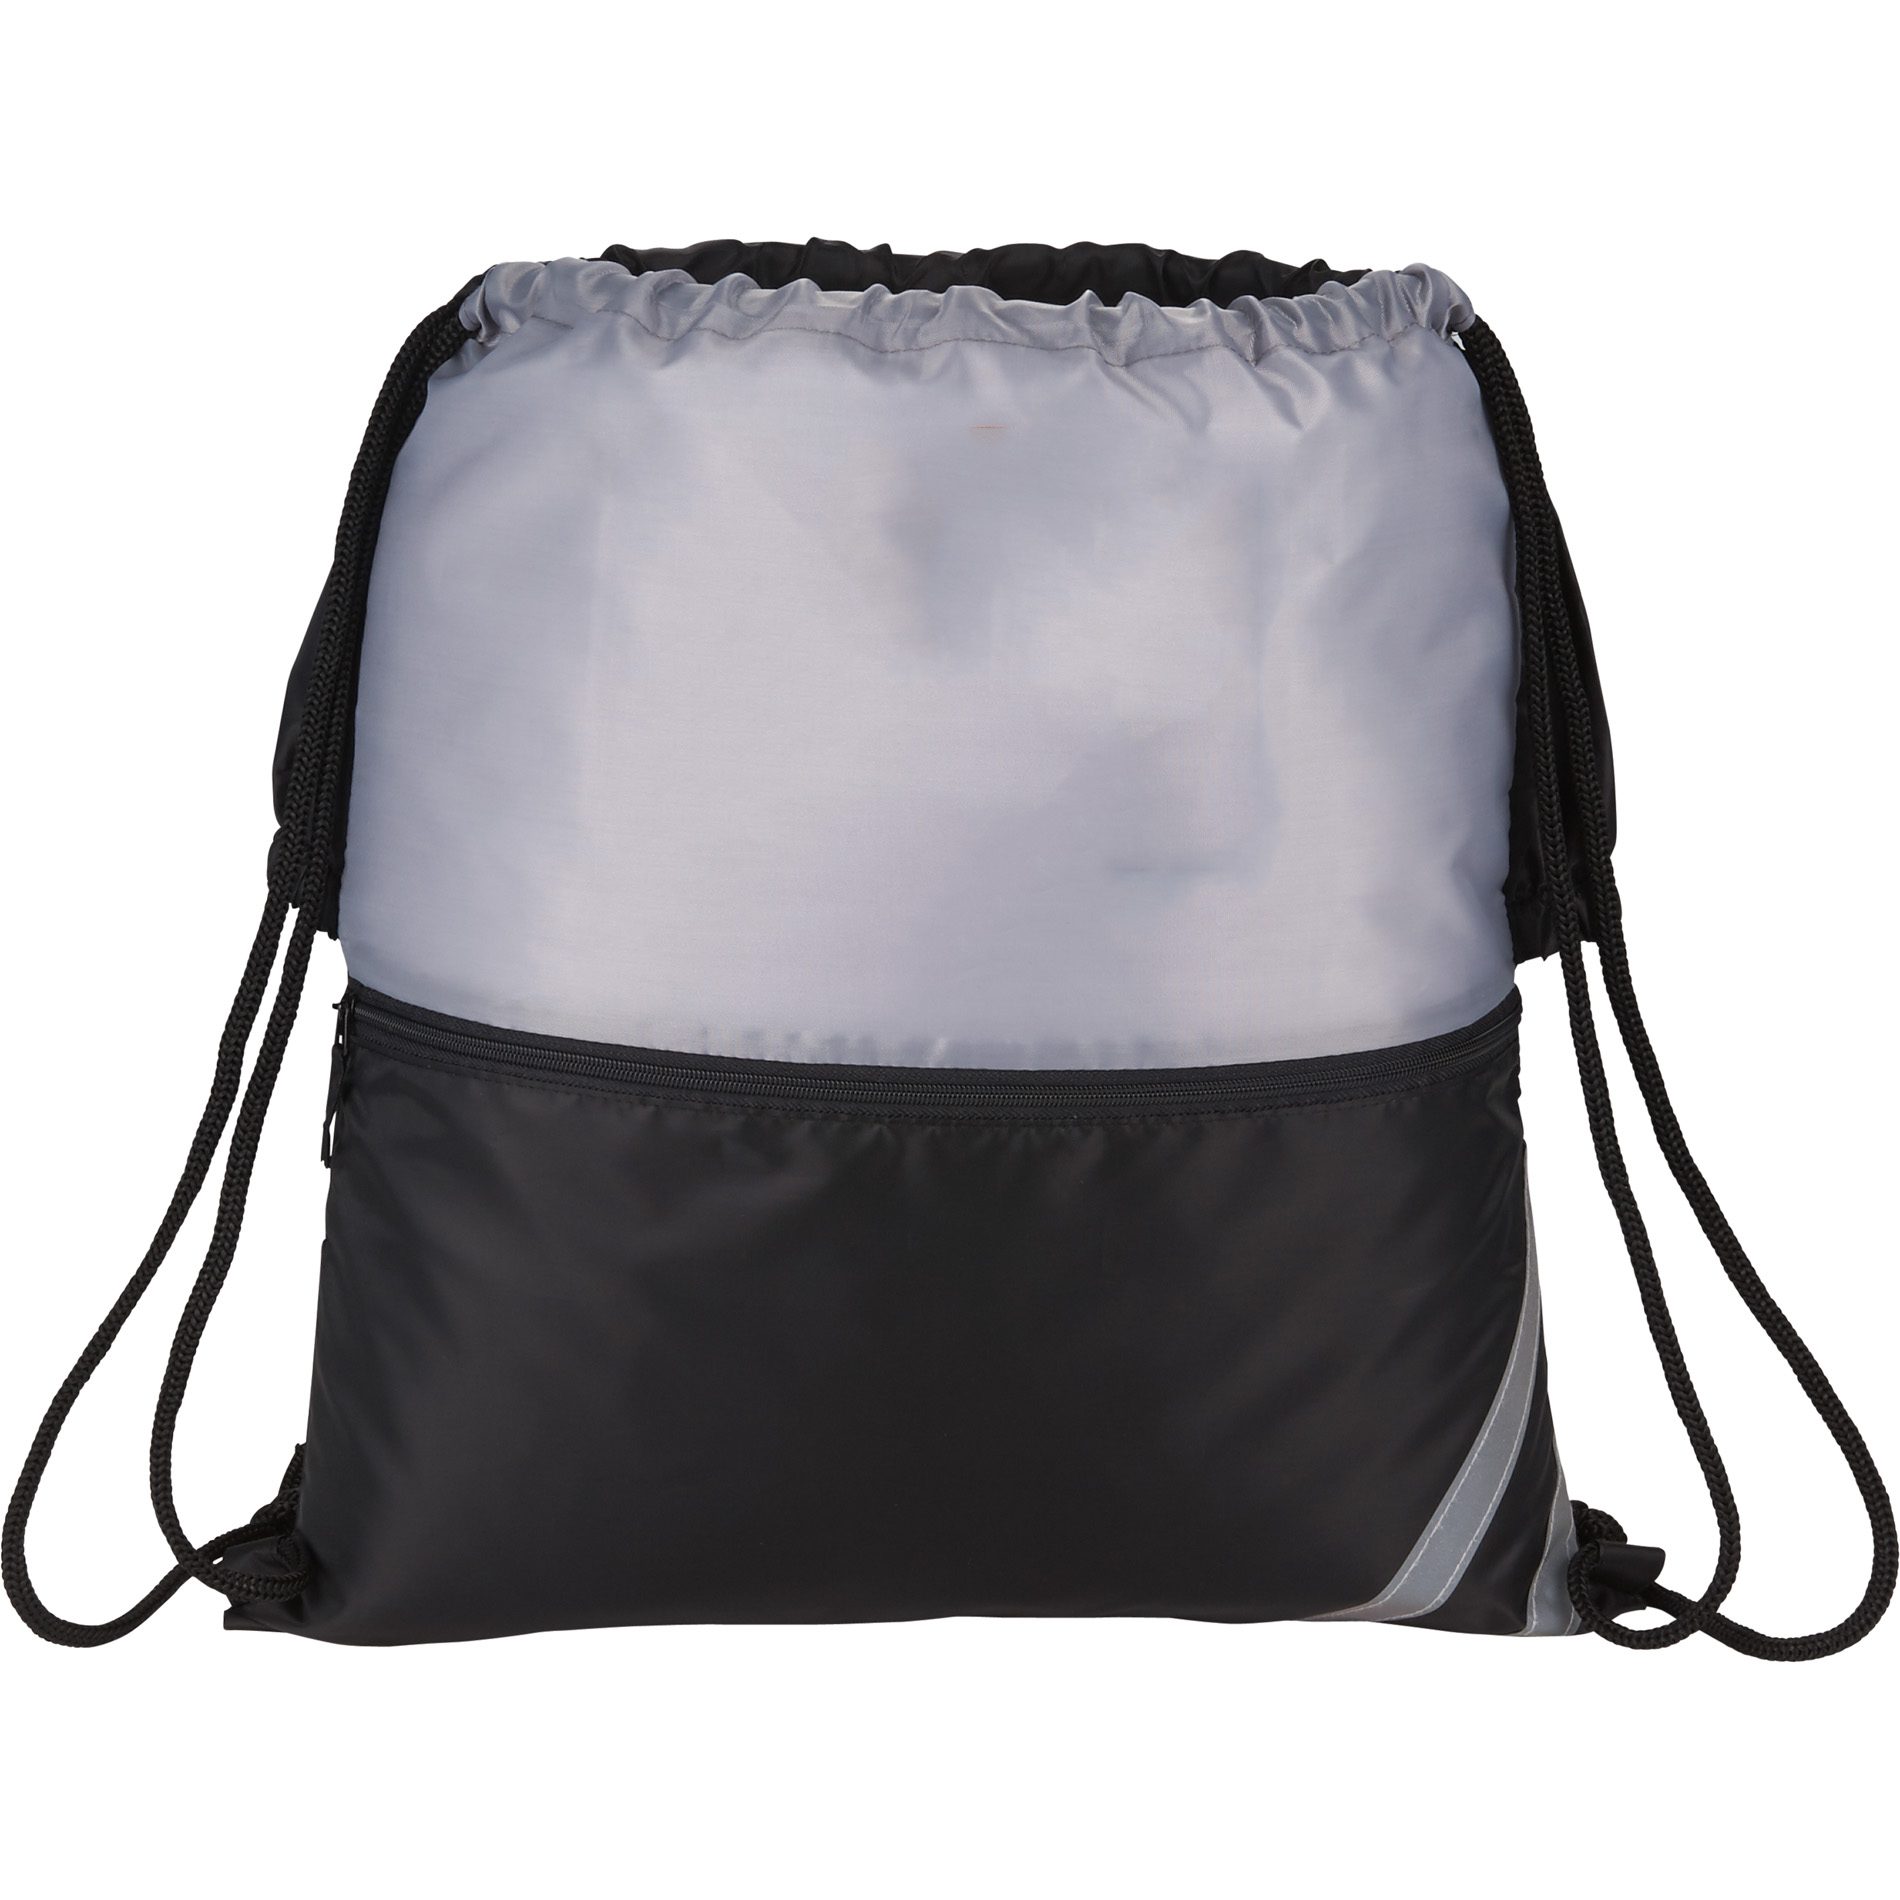 BackSac 3005-35 - Split Drawstring Bag